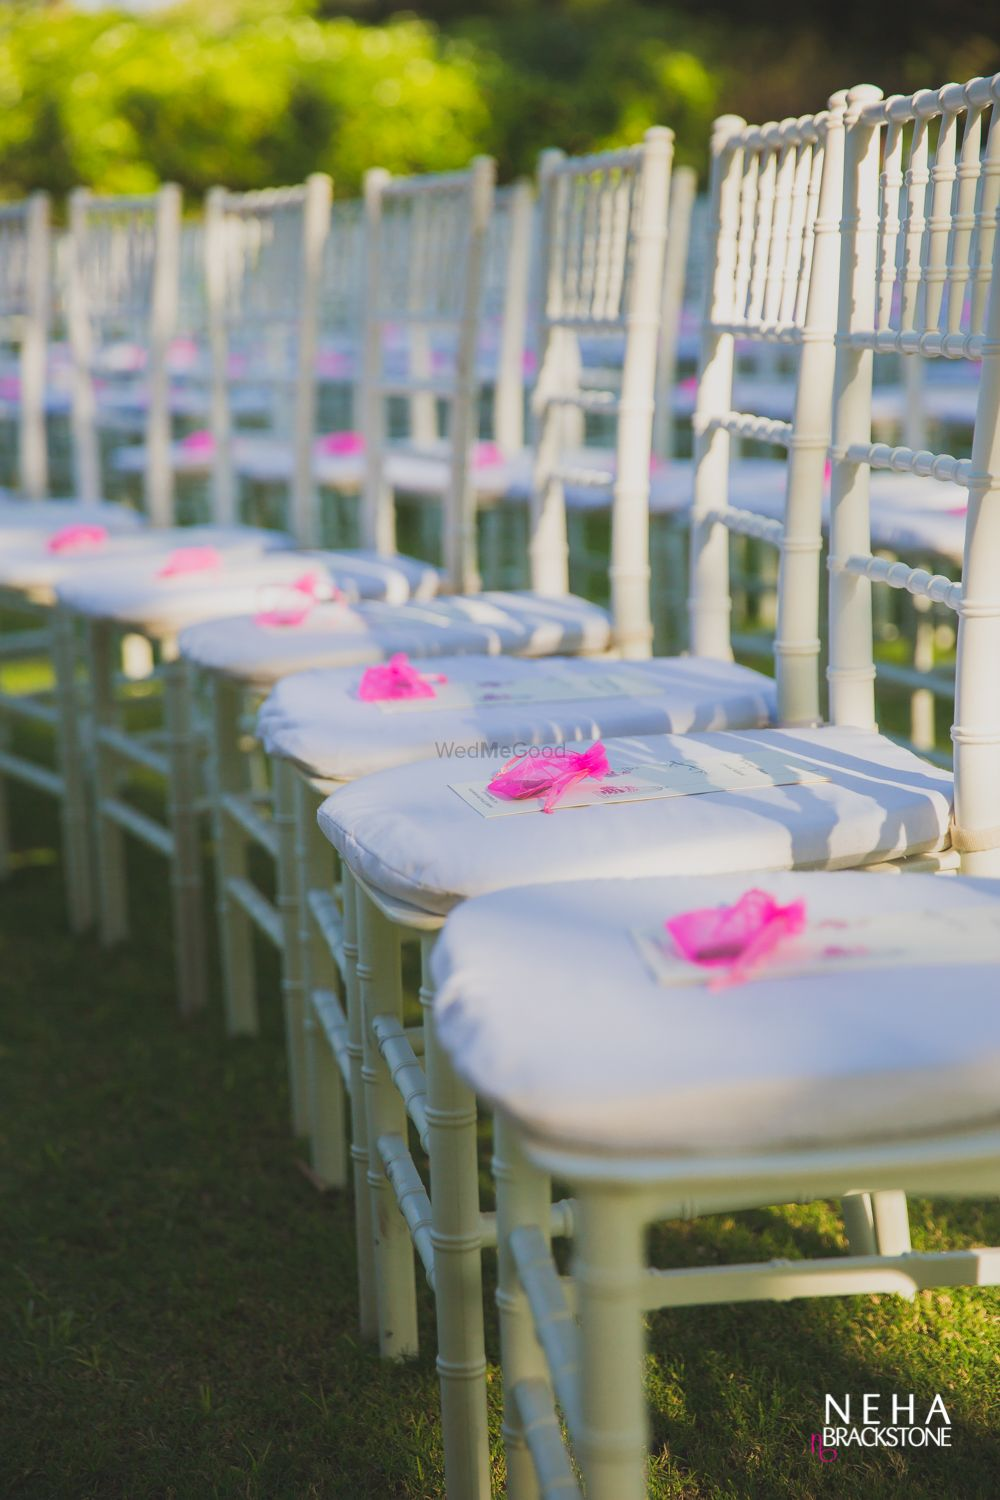 Photo of Chair decor ideas with bags with petals for guests